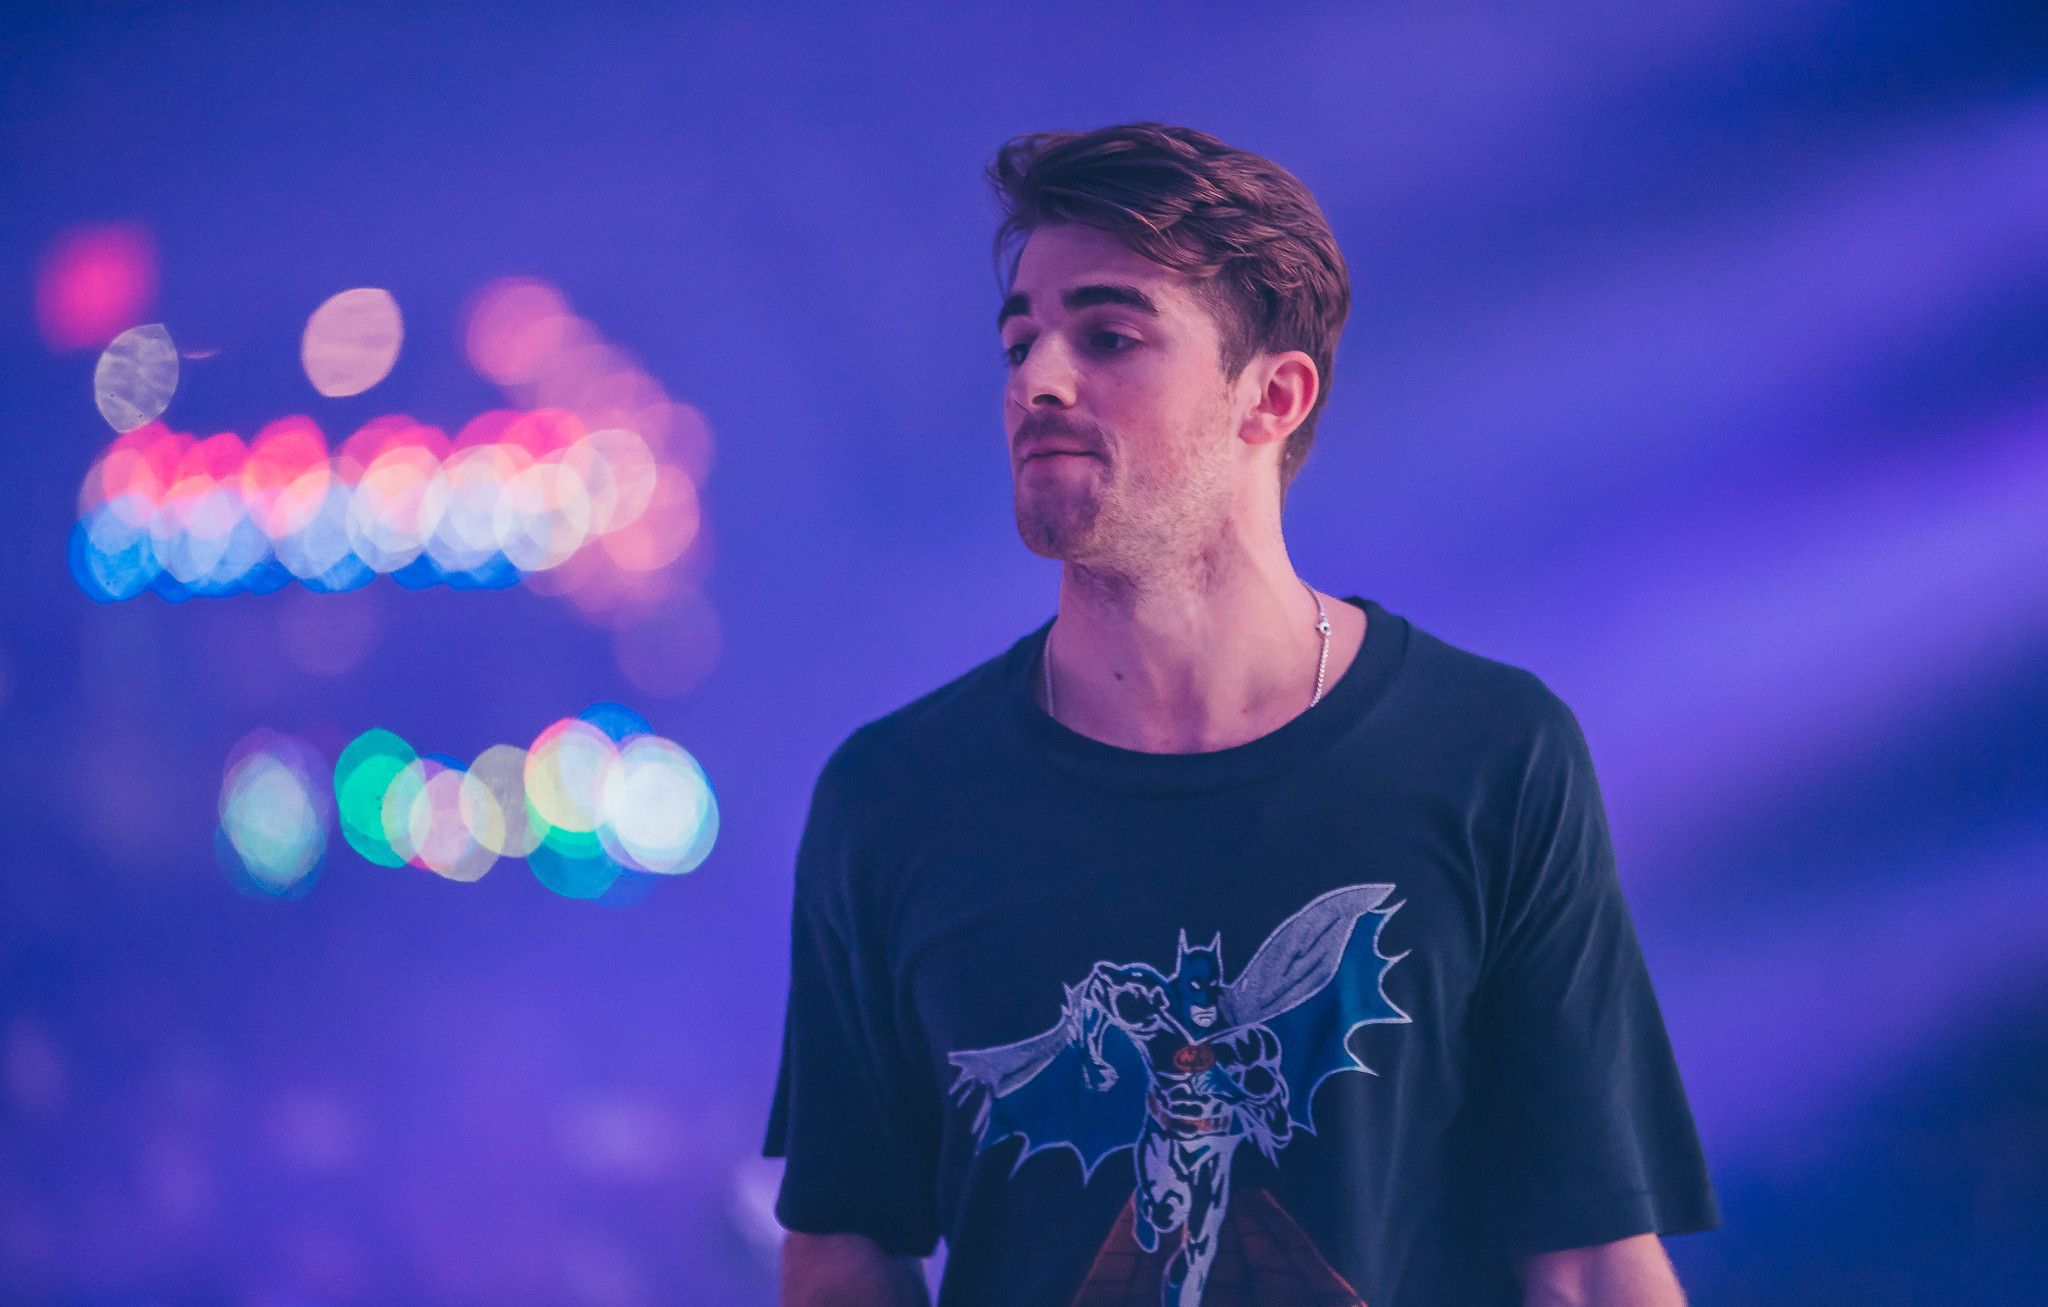 The Chainsmokers Wallpapers and Background Images   stmednet 2048x1307